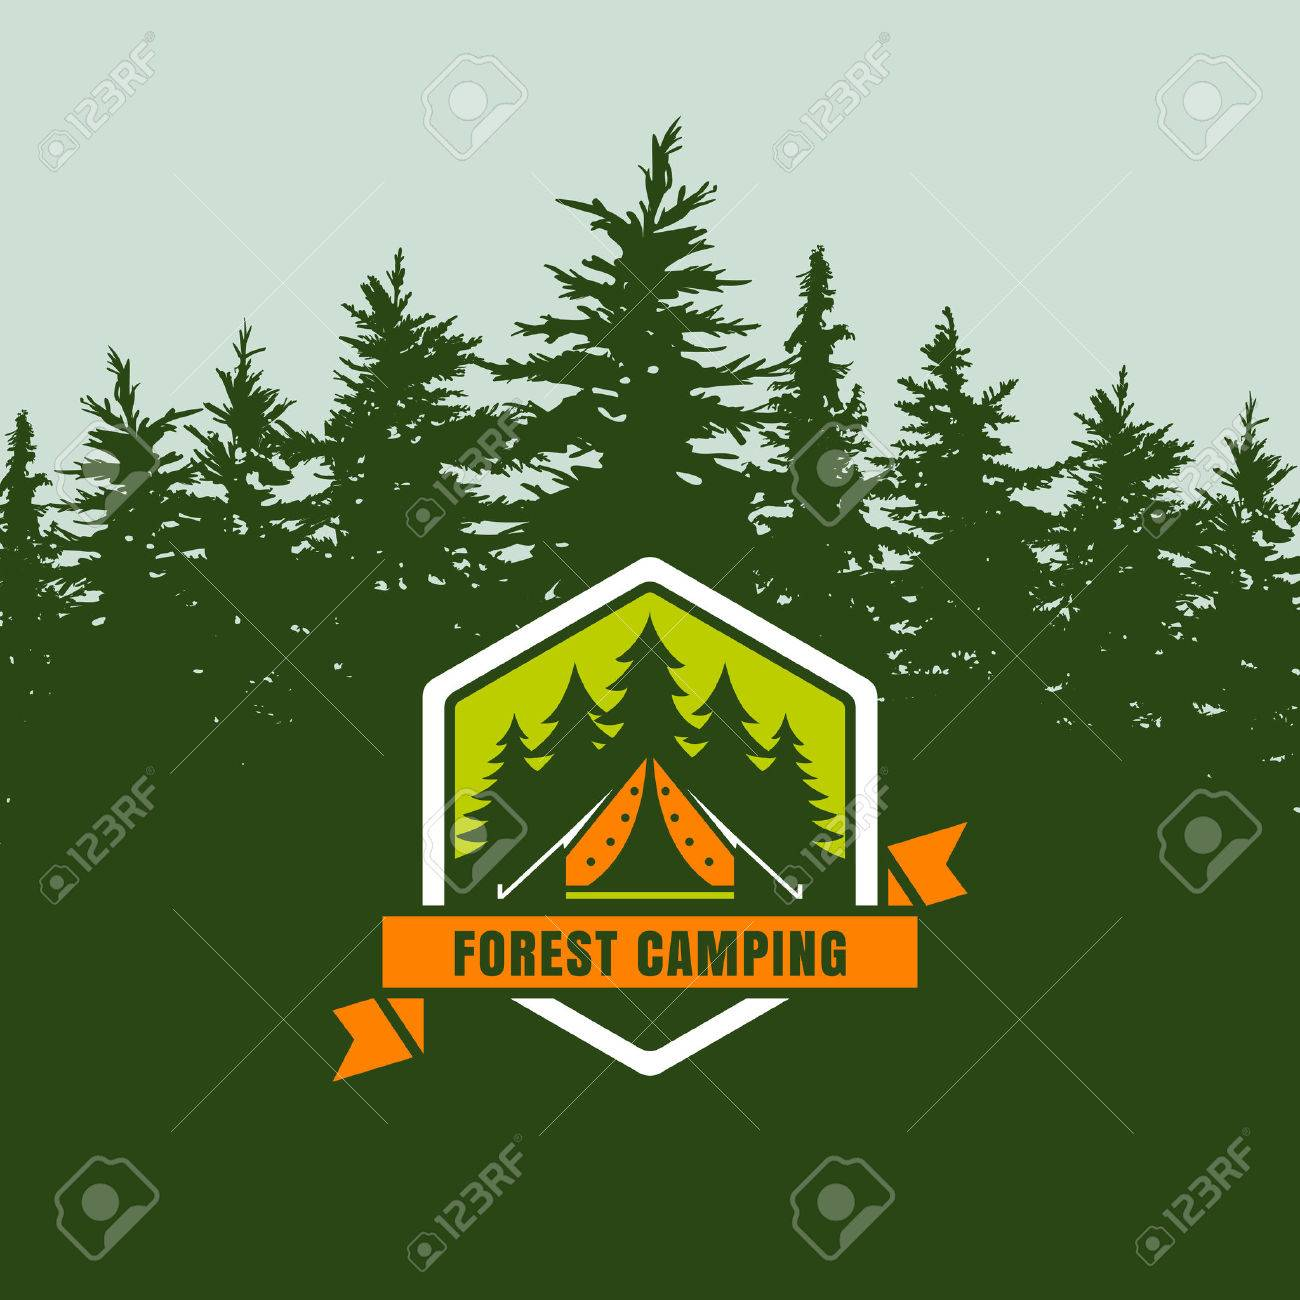 forest camping logo emblem or label on background with green